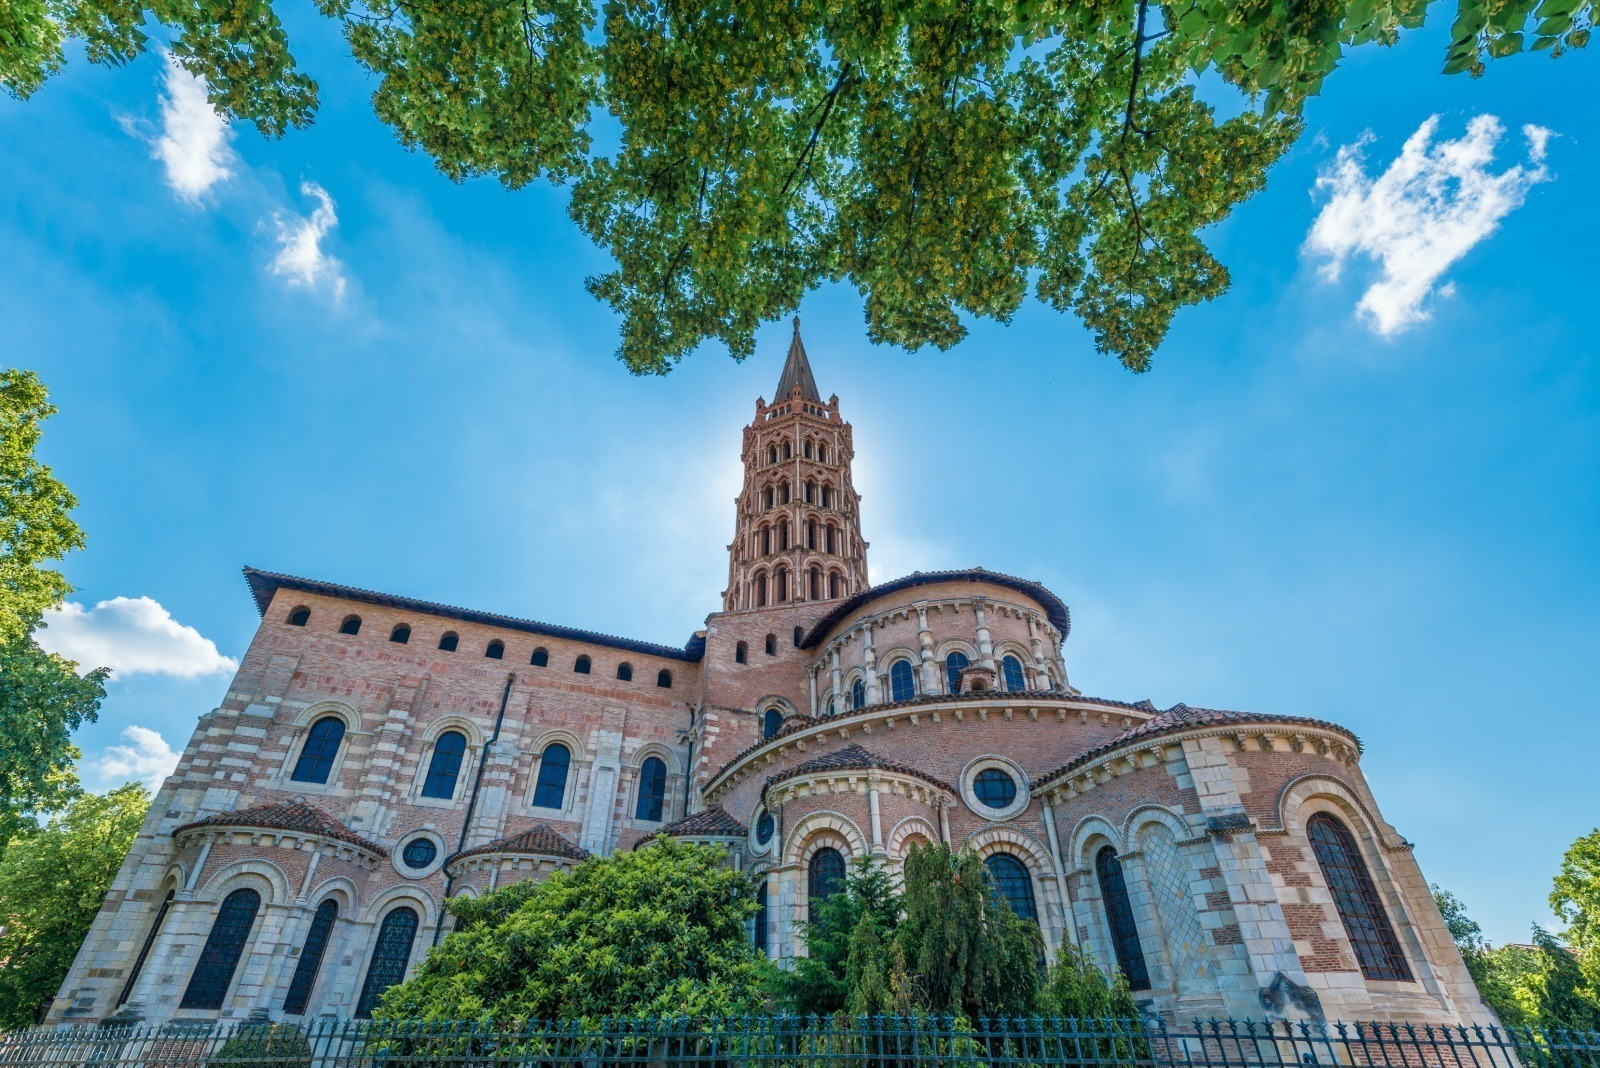 Road trip: Toulouse and the architecture of southwest France - Lonely Planet